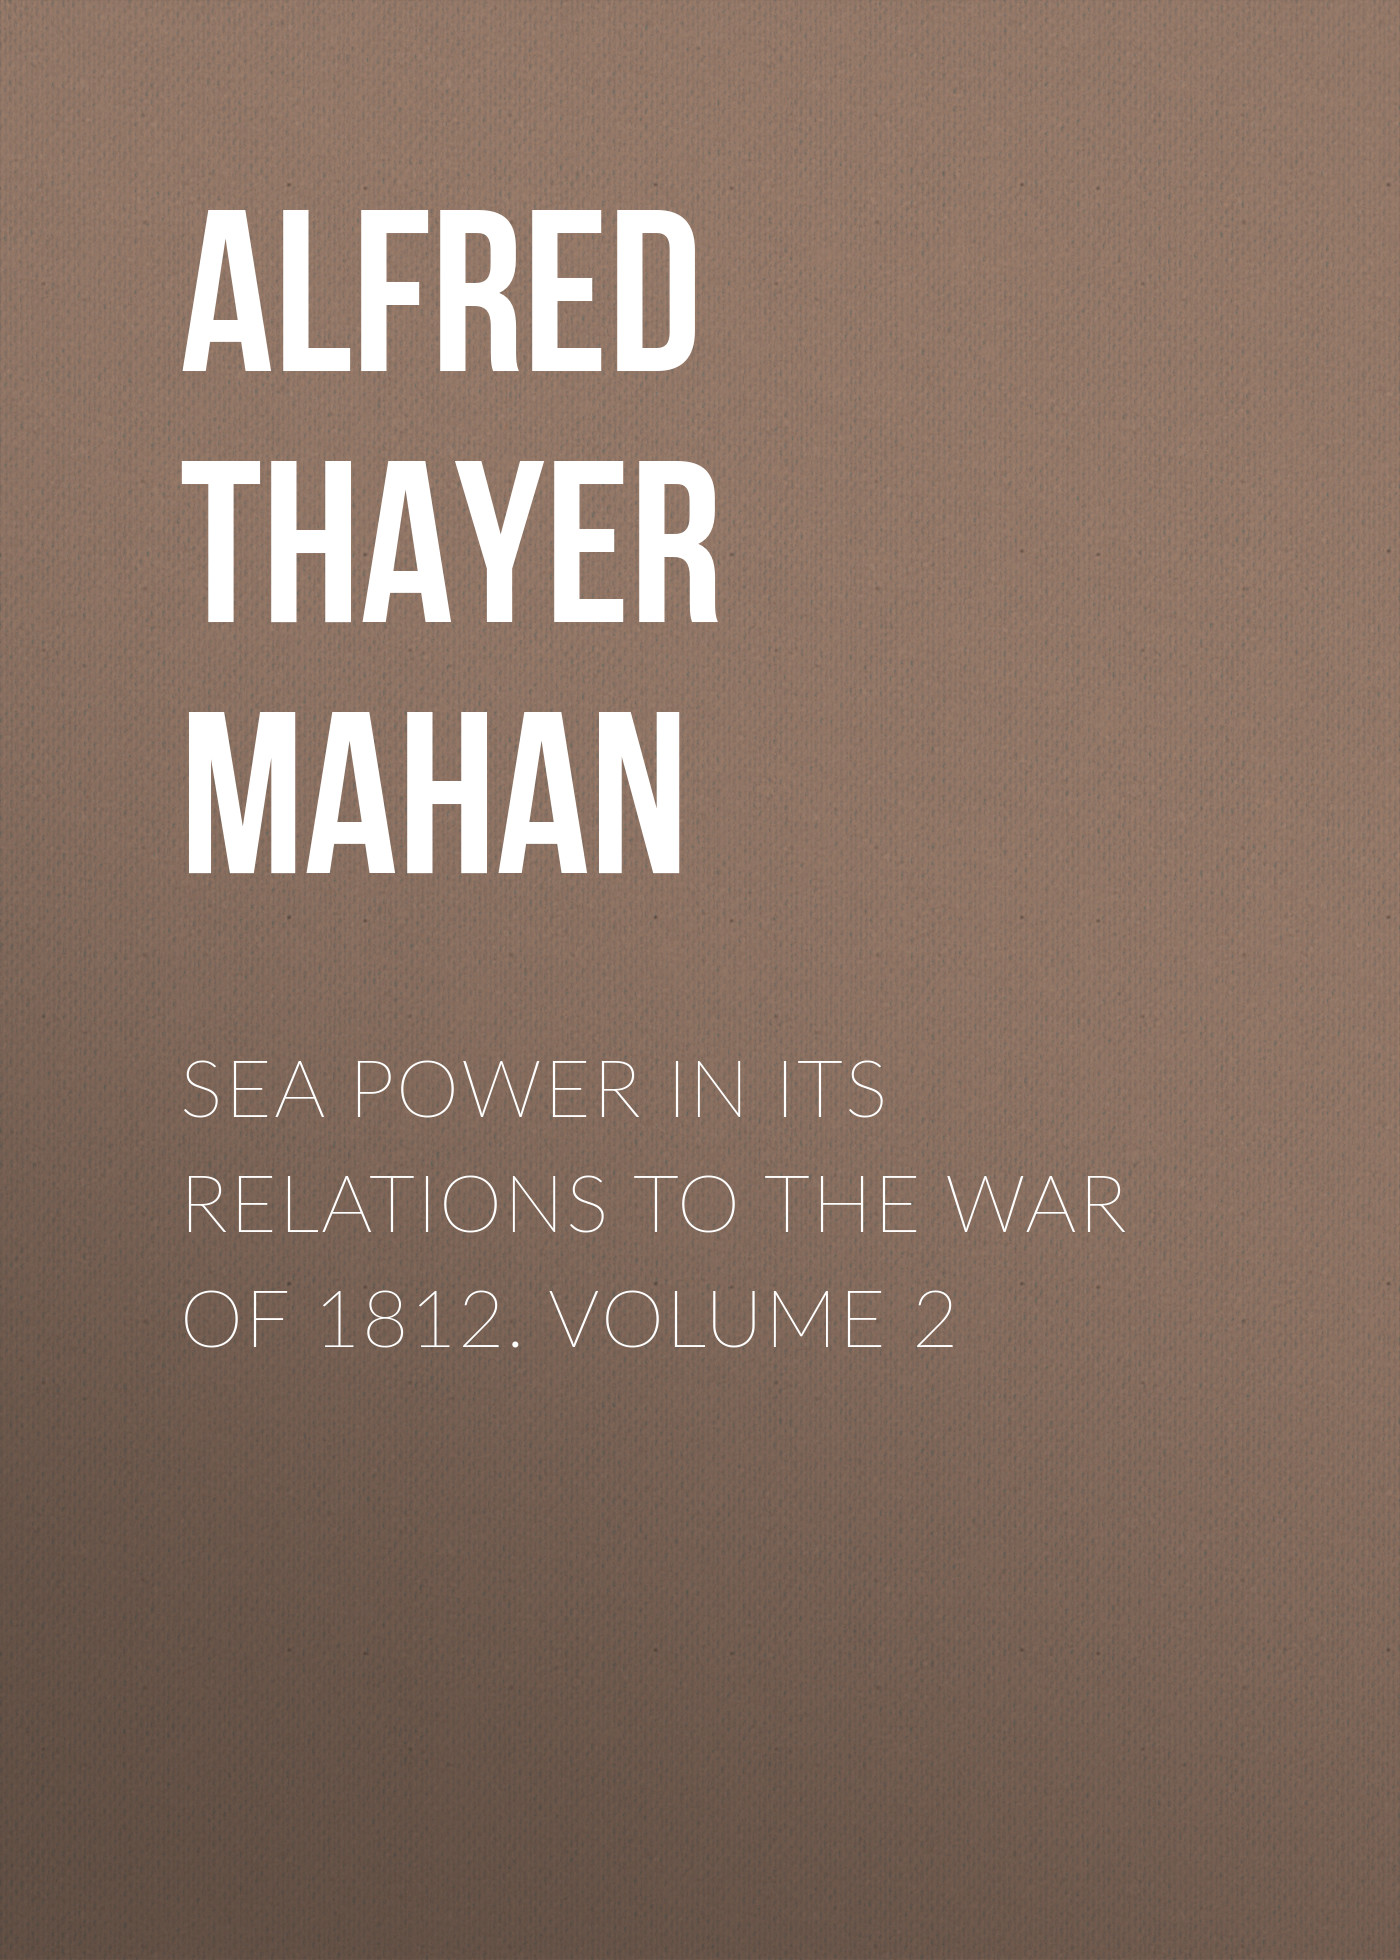 Alfred Thayer Mahan Sea Power in its Relations to the War of 1812. Volume 2 alfred thayer mahan from sail to steam recollections of naval life